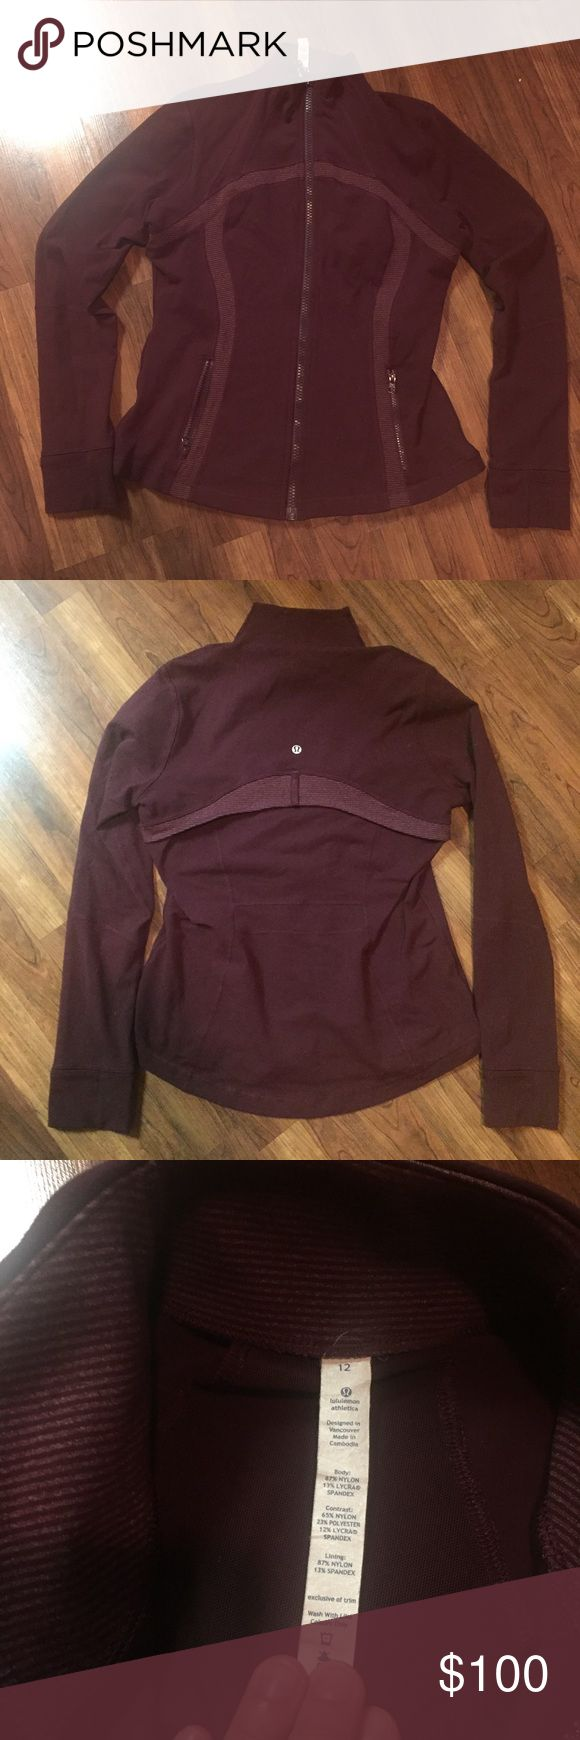 Drama Bordeaux Wee Stripe Define ⭐️Very Good Used Condition - the only sign of wear is the zipper pull chipping (see photo).  I've included stock photo because I had such a hard time getting this color to photograph.  ❤️Dog Friendly Home 🐶 so will most likely have some stray hairs lululemon athletica Jackets & Coats